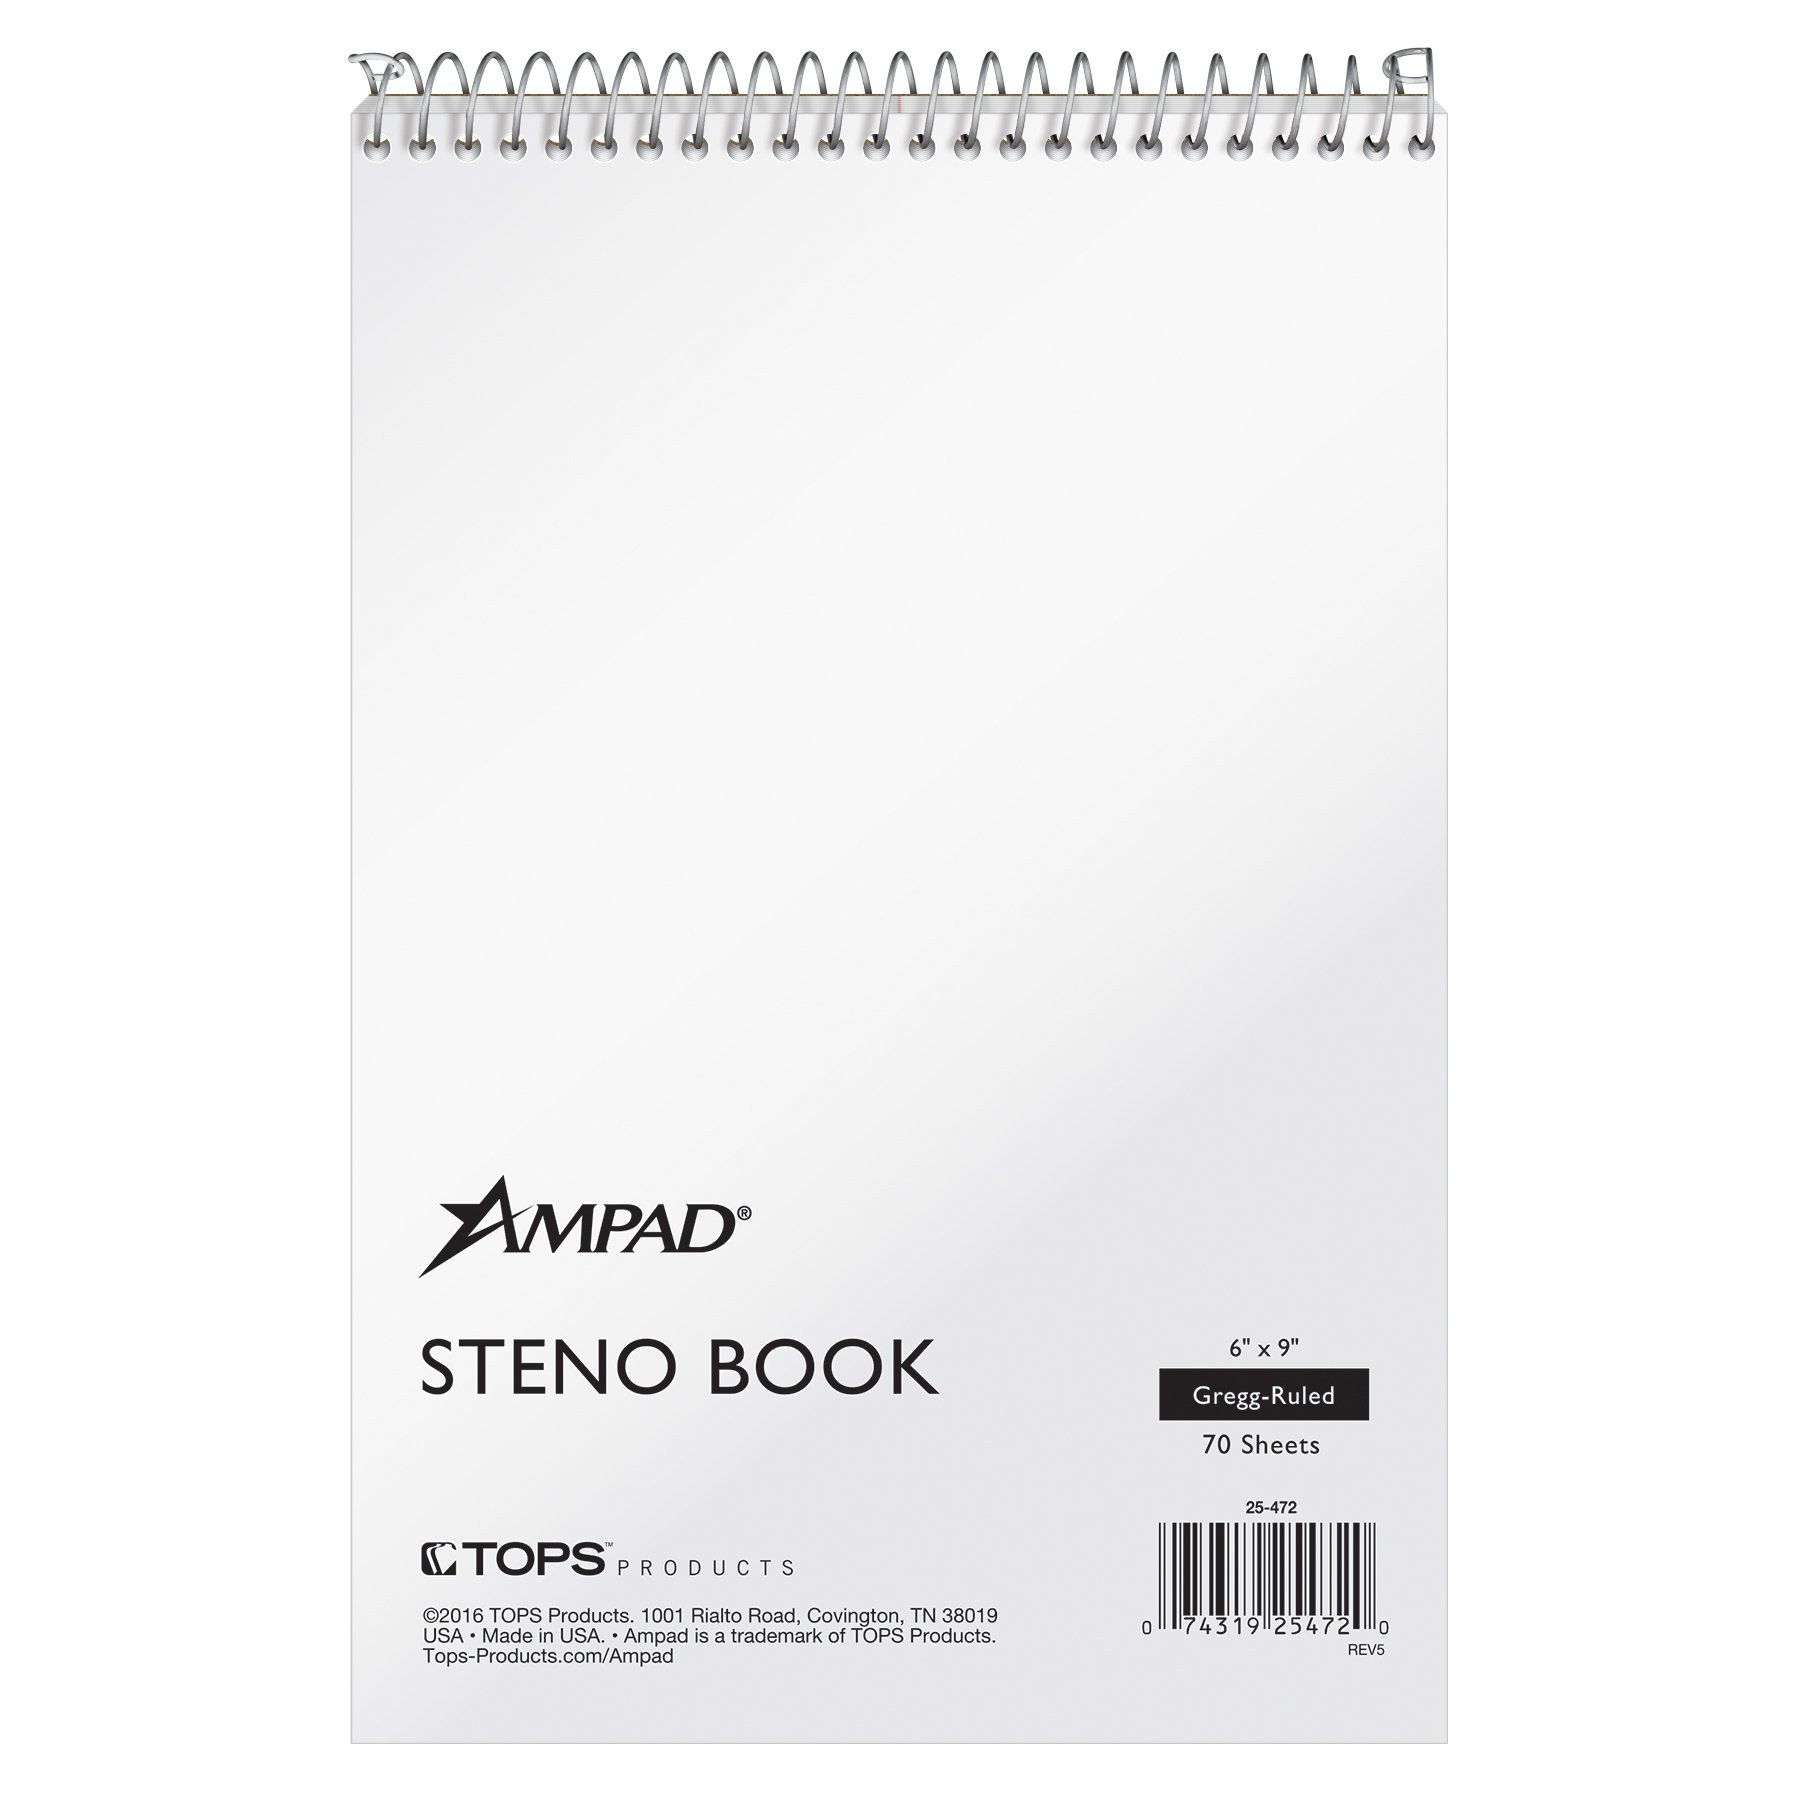 Ampad Steno Notebook, 6 X 9 Inches, White Paper, Gregg Ruled, White Cover, 70 Sheets Per Book, 12-Pack (25-472) by Ampad